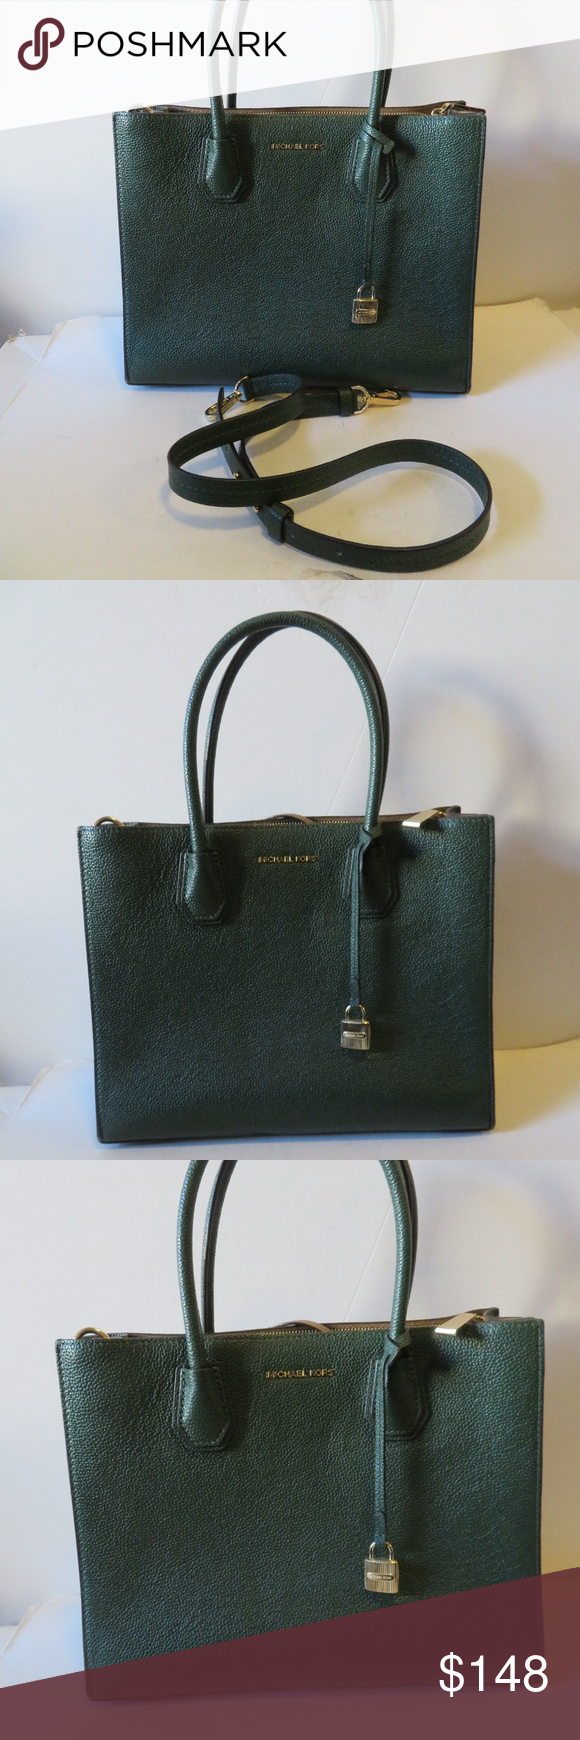 MICHAEL KORS MERCER HUNTER GREEN LEATHER BAG WOMENS MICHAEL KORS MERCER HUNTER  GREEN LEATHER SHOULDER CROSSBODY 04f0587264